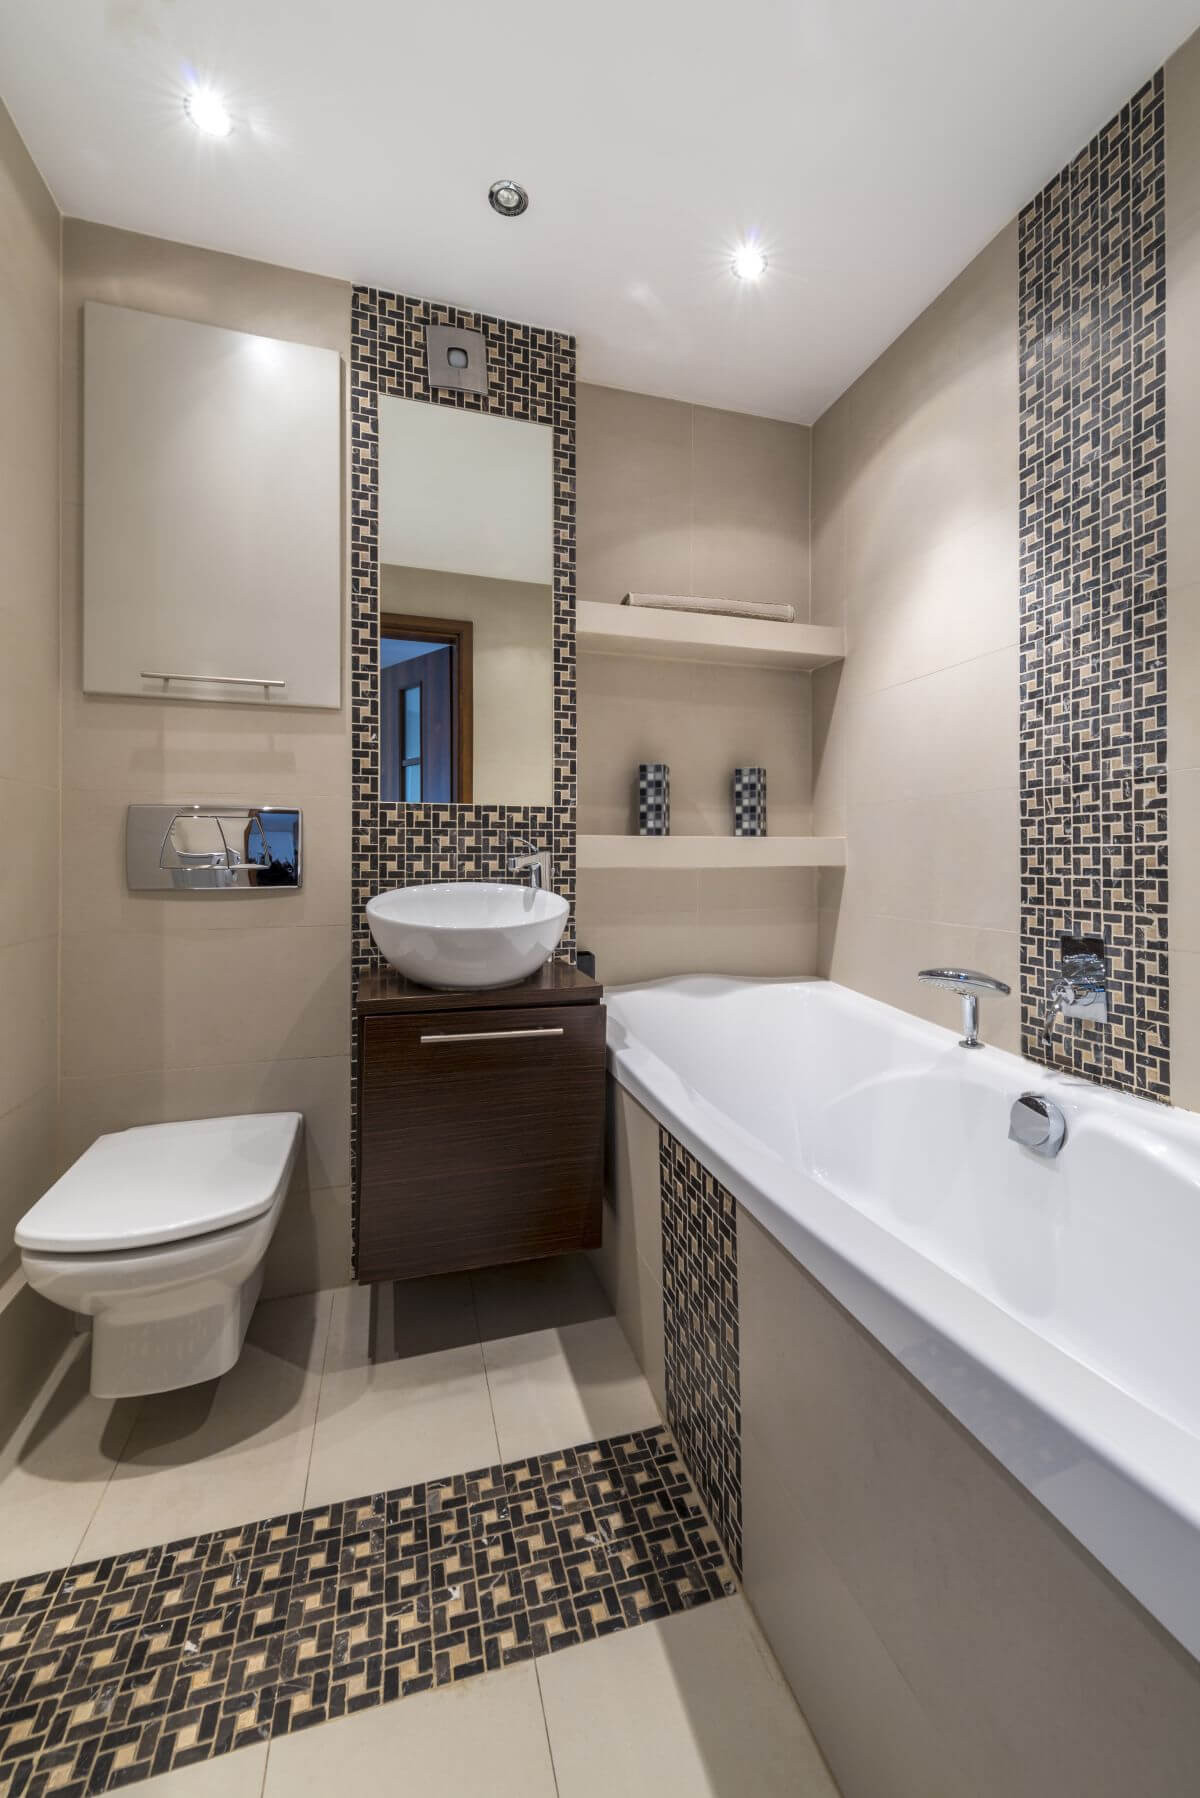 Best ideas about Small Bathroom Plans . Save or Pin 32 Best Small Bathroom Design Ideas and Decorations for 2019 Now.